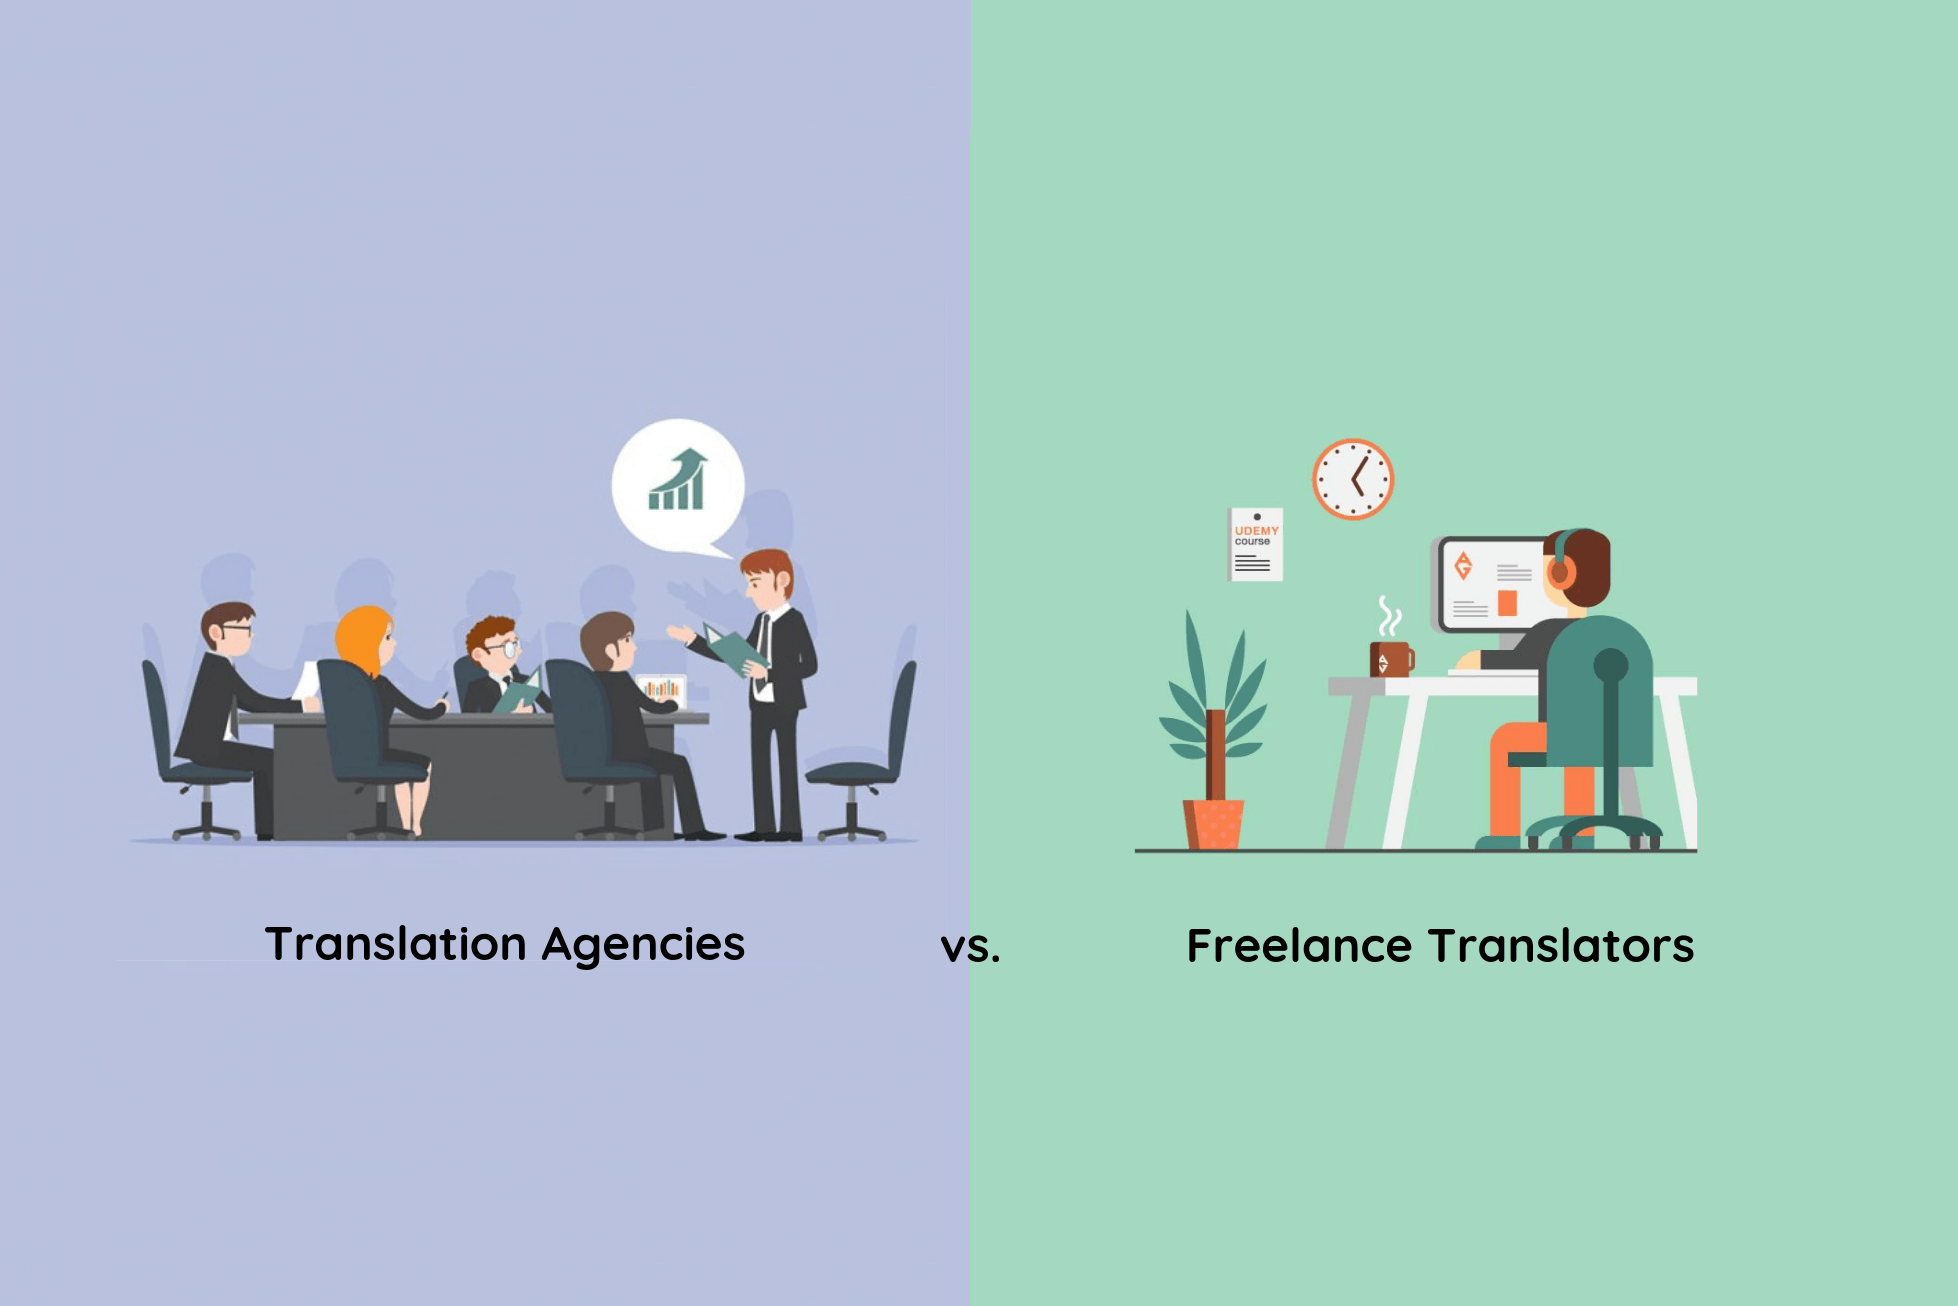 Translation Agencies vs Freelance Translators